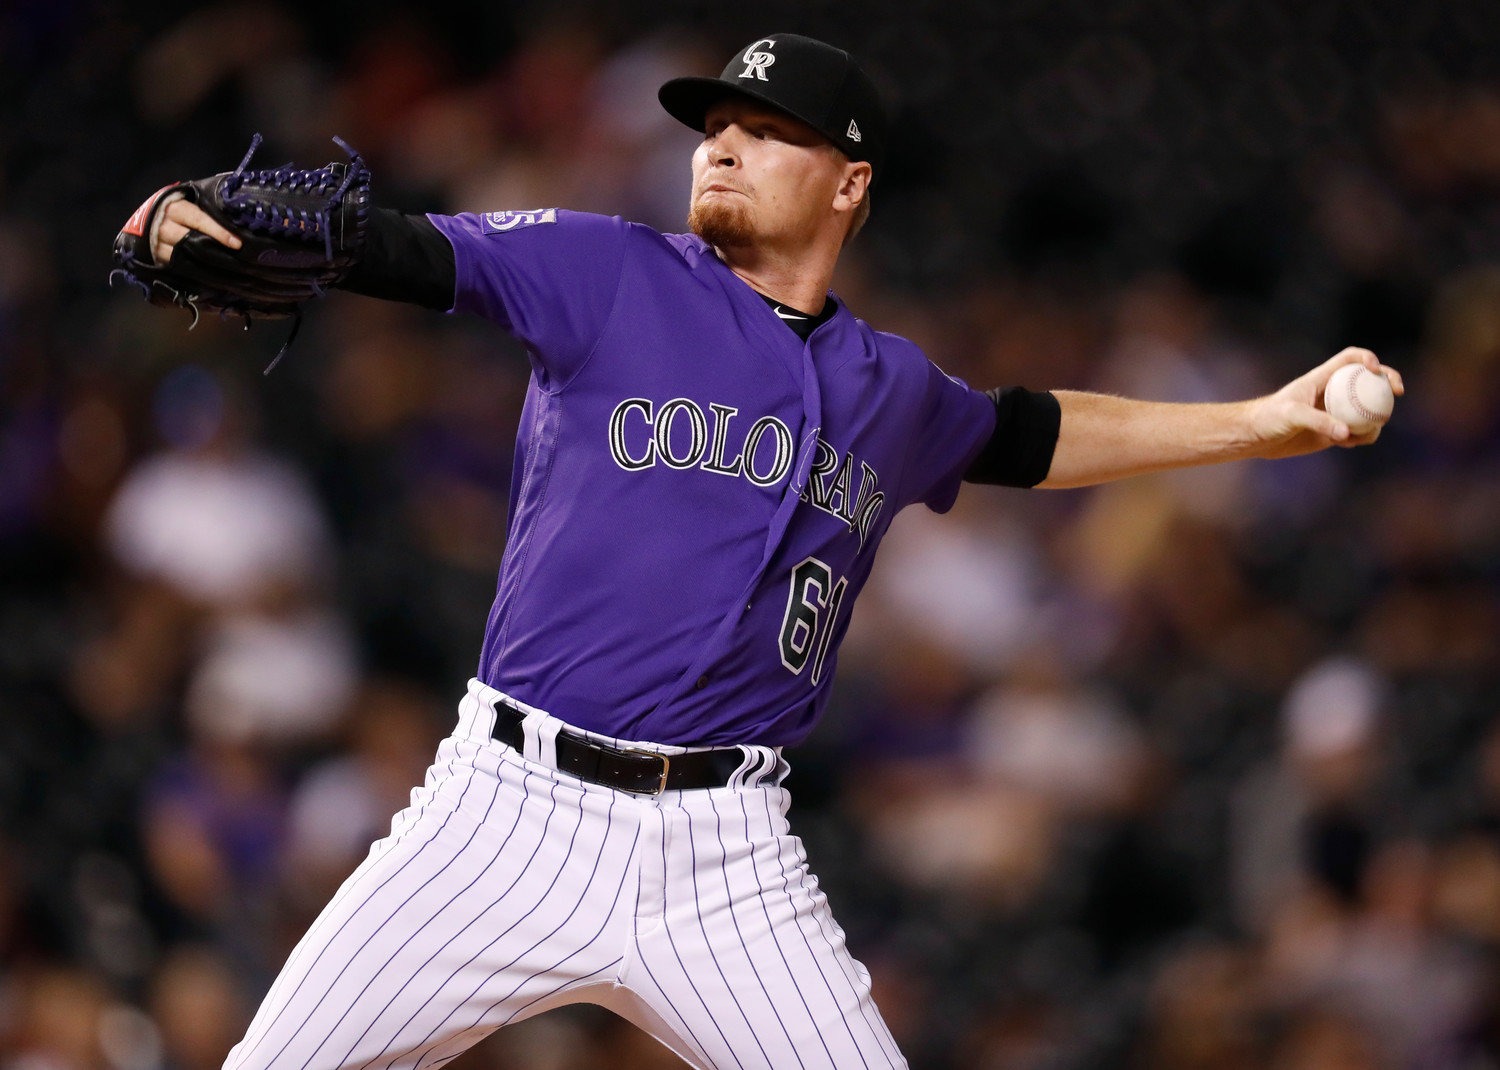 Colorado Rockies relief pitcher Sam Howard works against the Arizona Diamondbacks in the ninth inning of an MLB game Sept. 10, 2018, in Denver. The Cartersville High product posted two scoreless outings over the past week, lowering his season ERA to 4.24 for the Triple-A Albuquerque Isotopes.